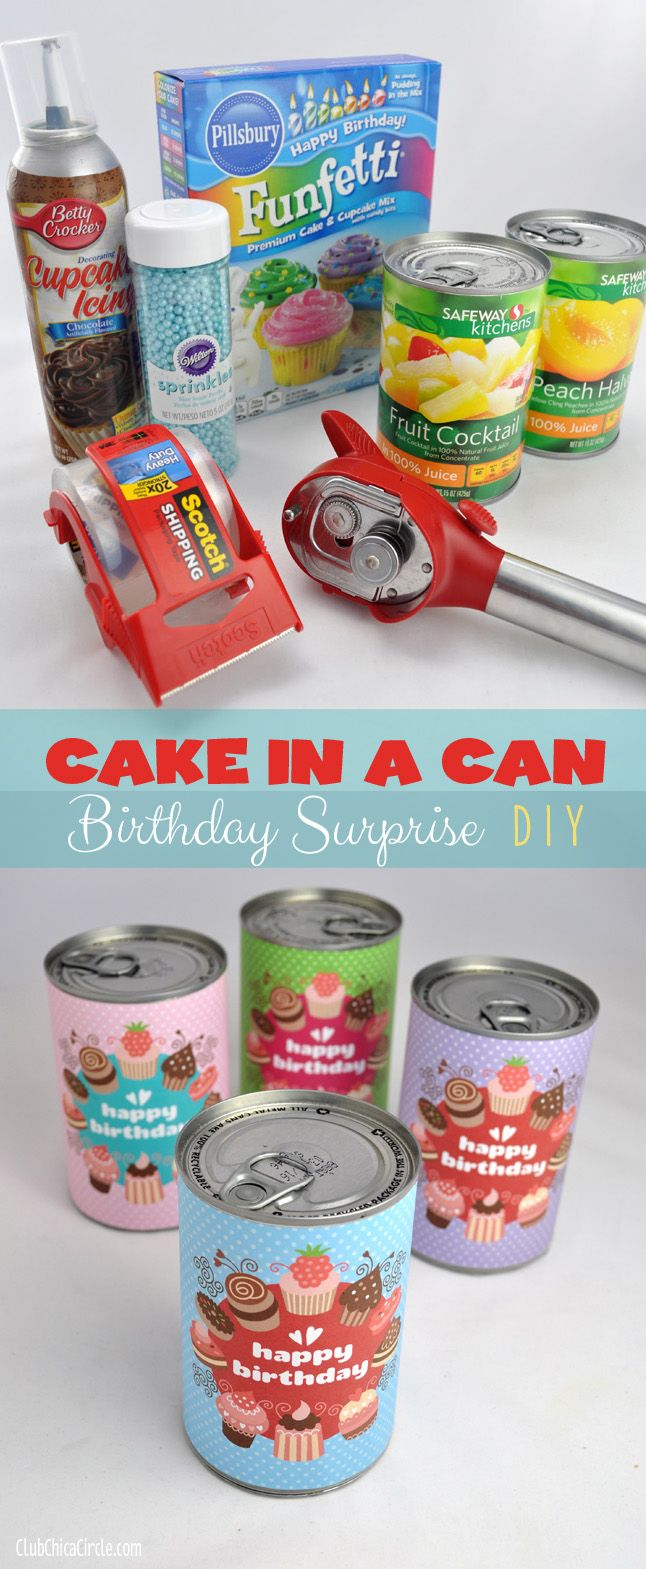 The 36th AVENUE | Birthday Cake In A Can Tutorial